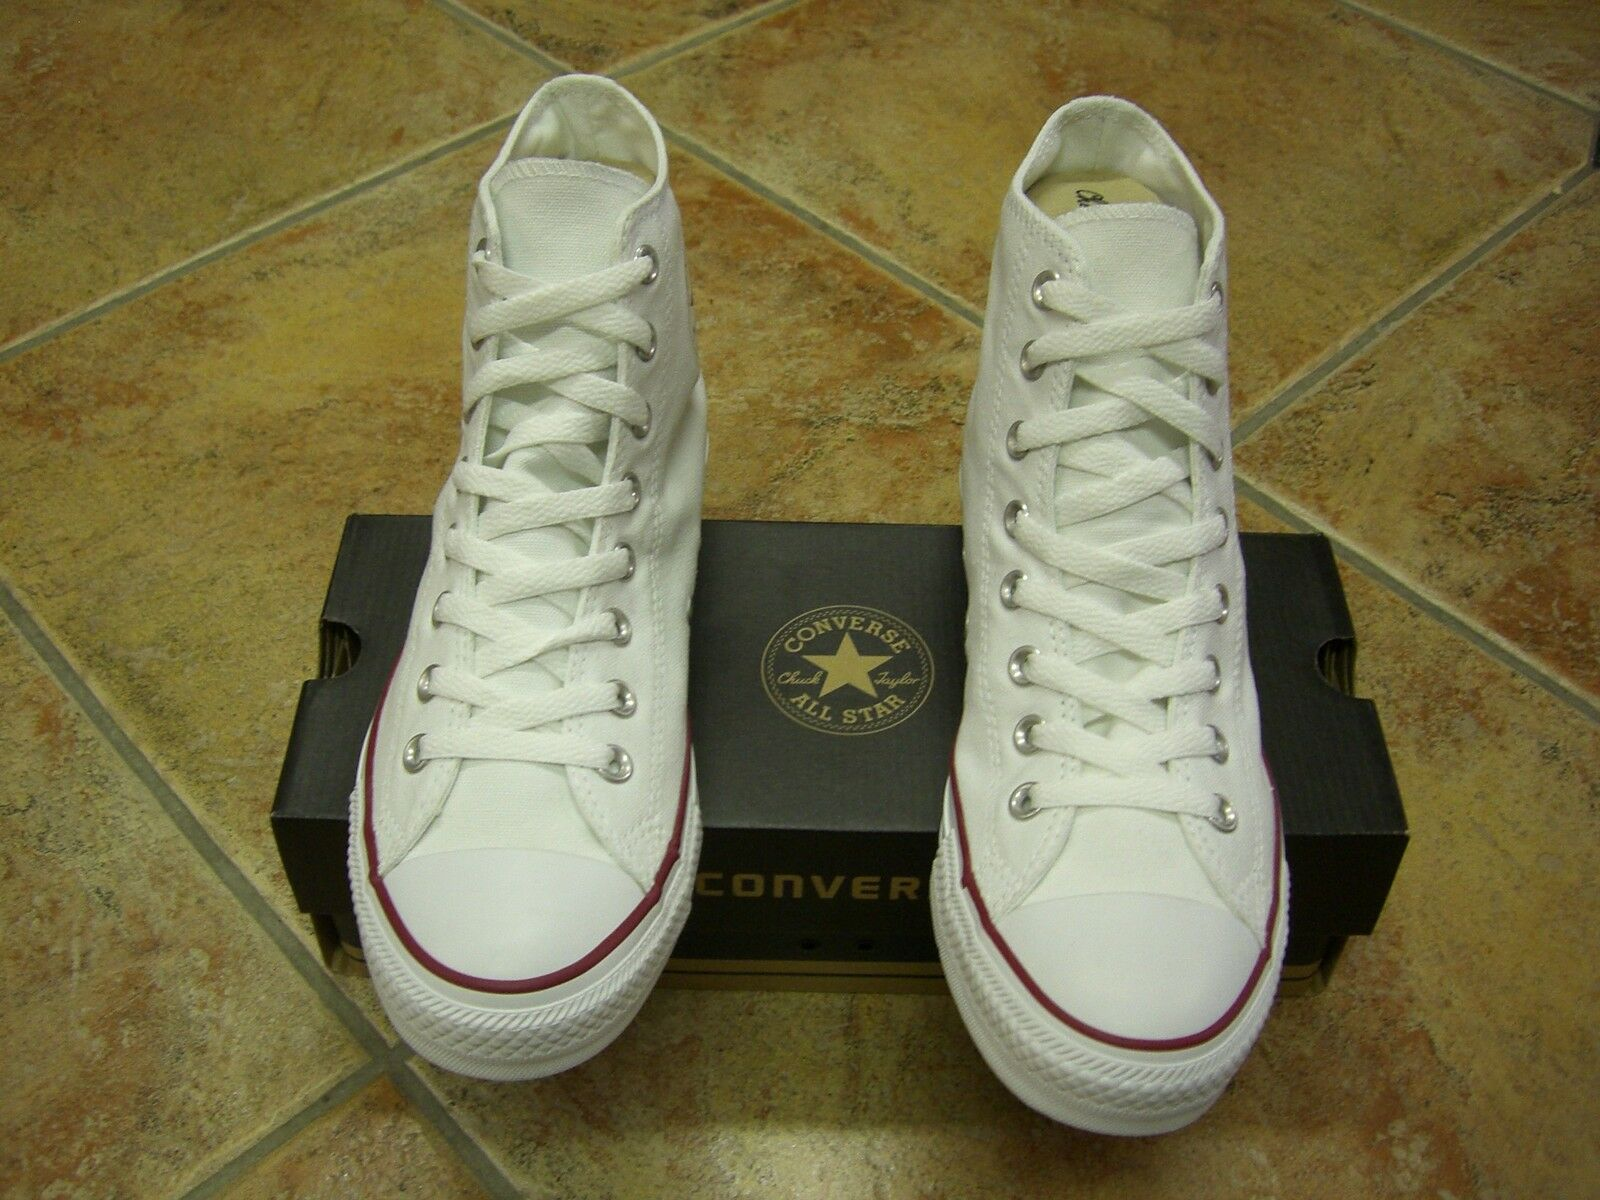 Converse Chucks All Star HI Gr.40 Optical White M 7650  Neu Trendy